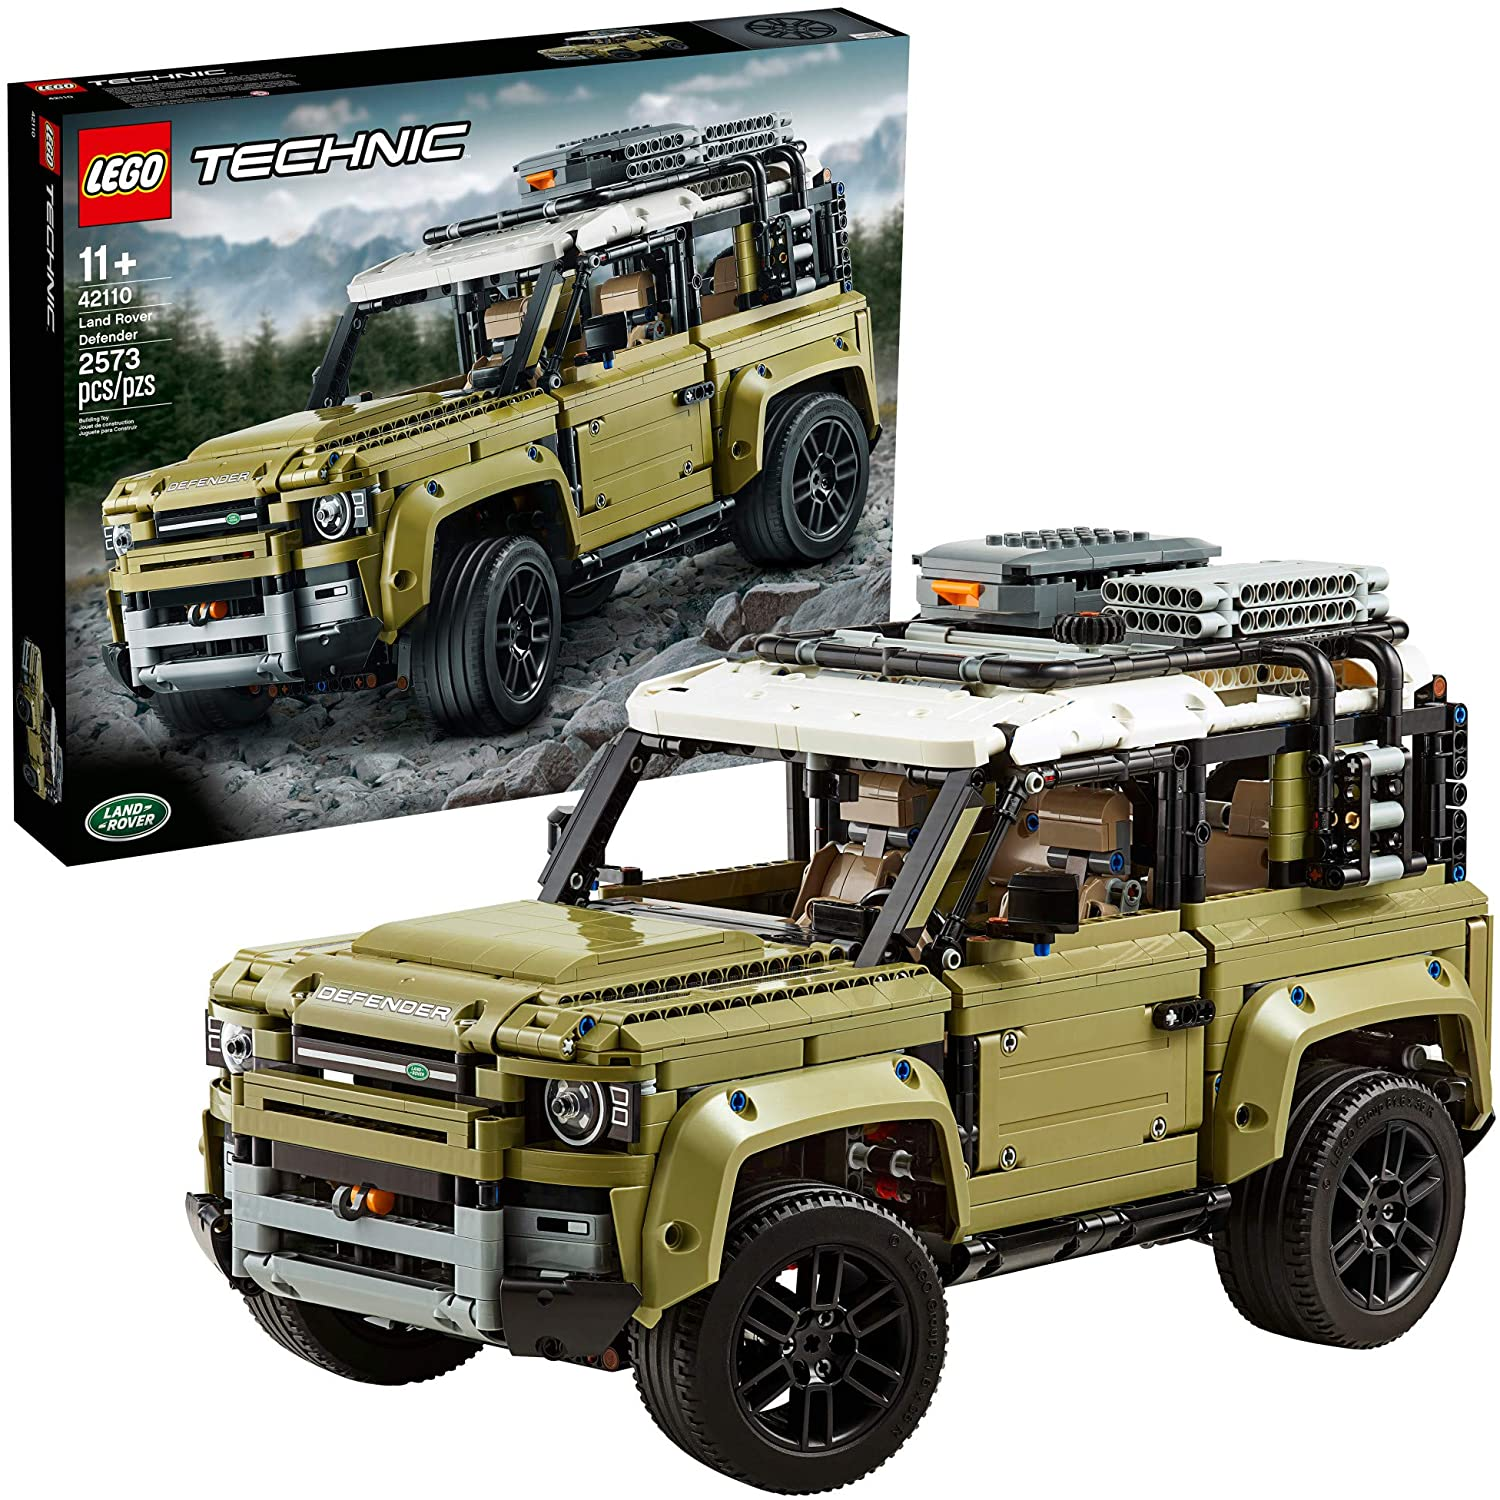 lego-technic-land-rover-defender-42110-building-kit-2573-piece-2021-4-16